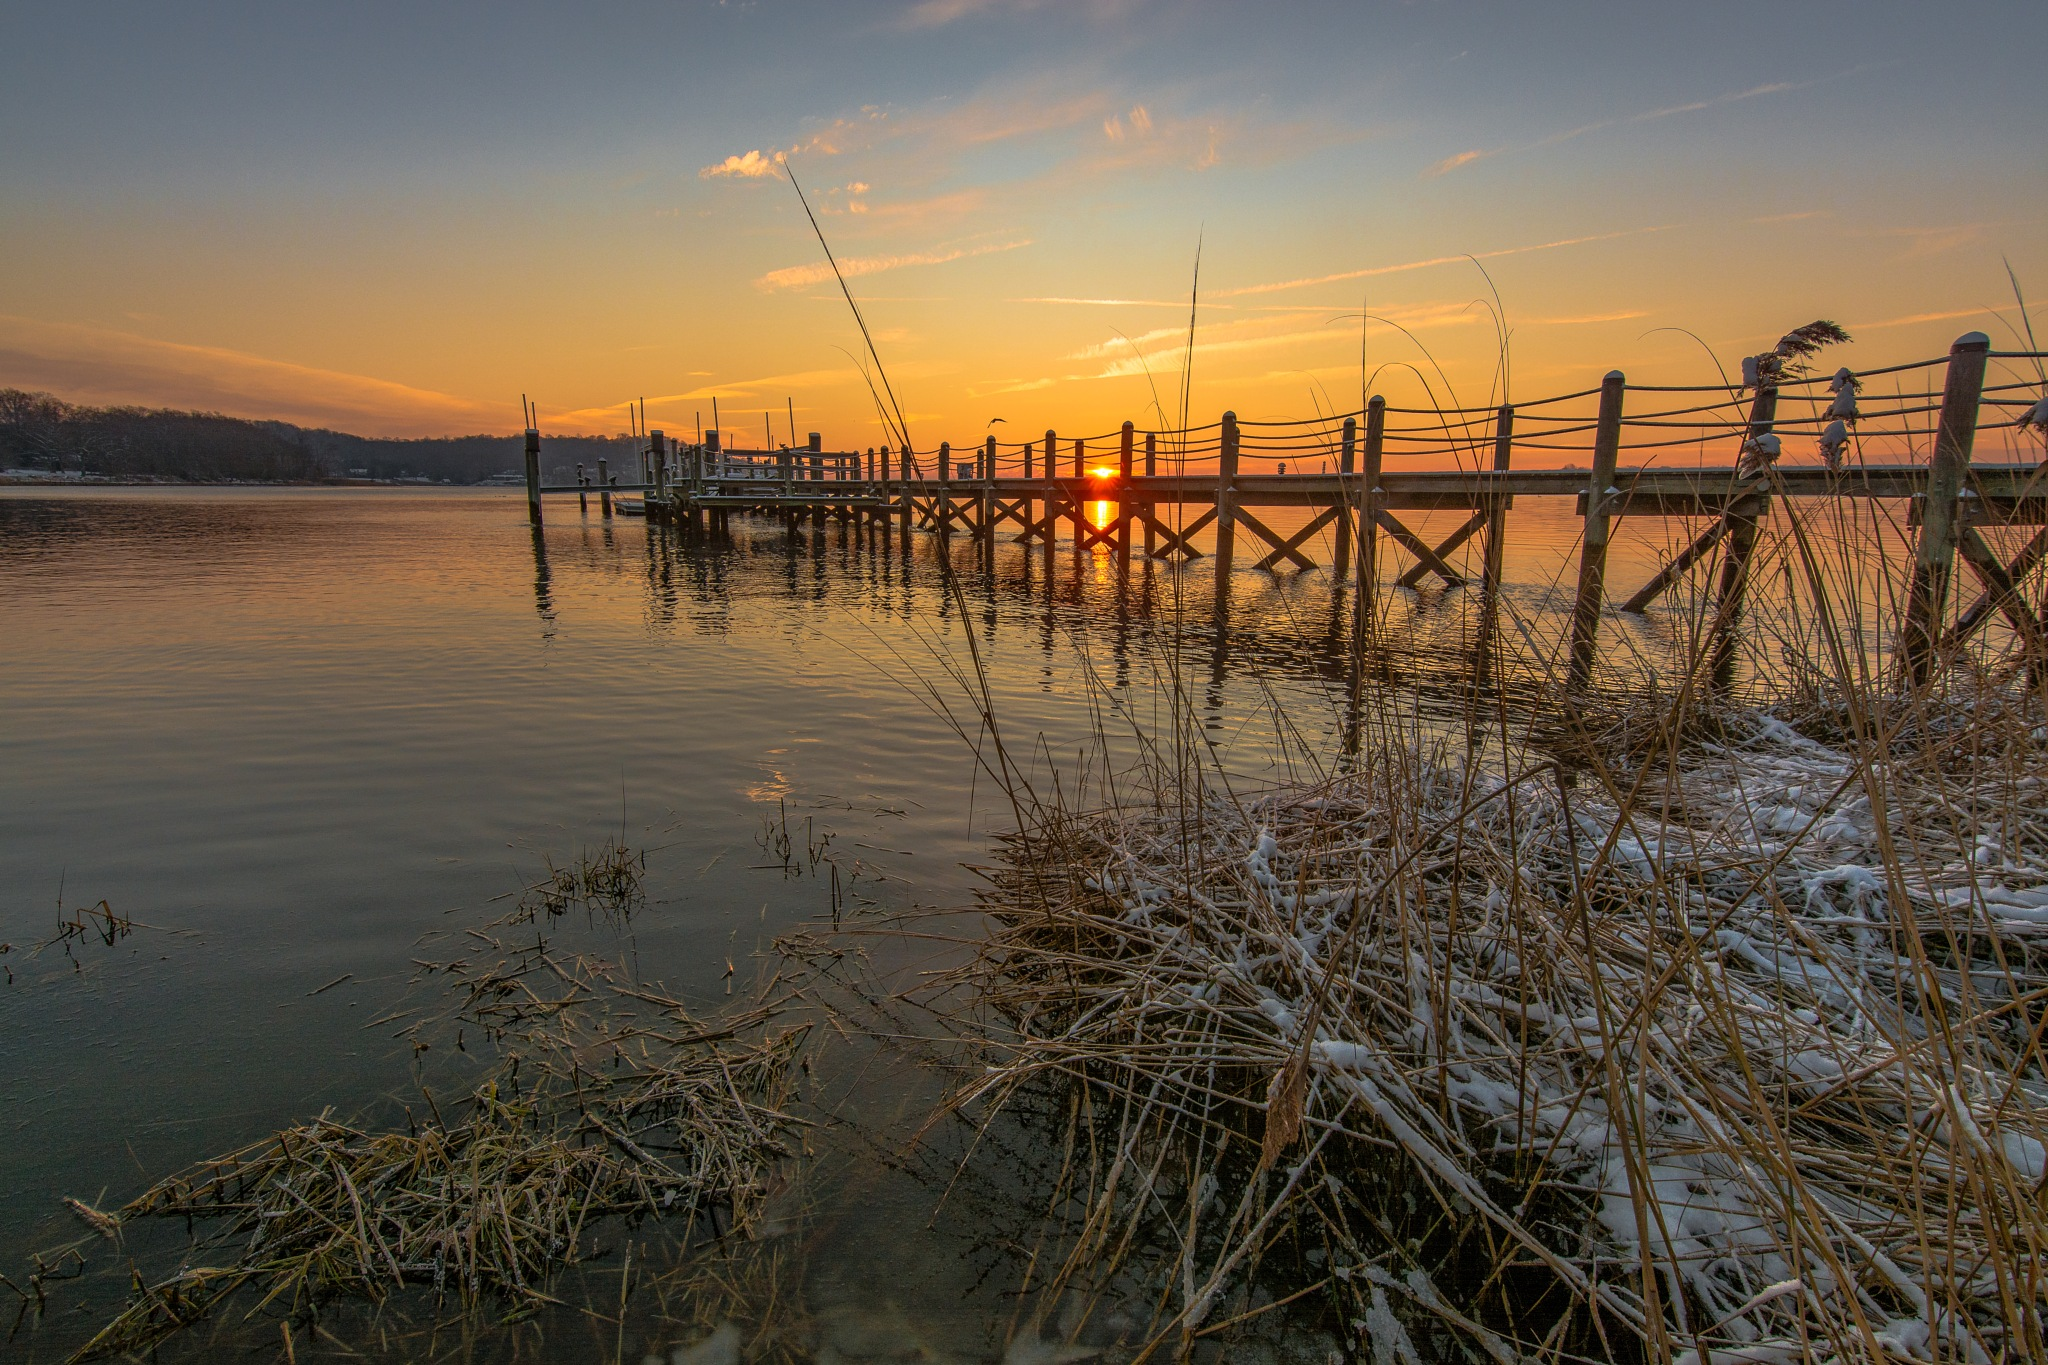 A dock on the Navesink River by Nico Bruni